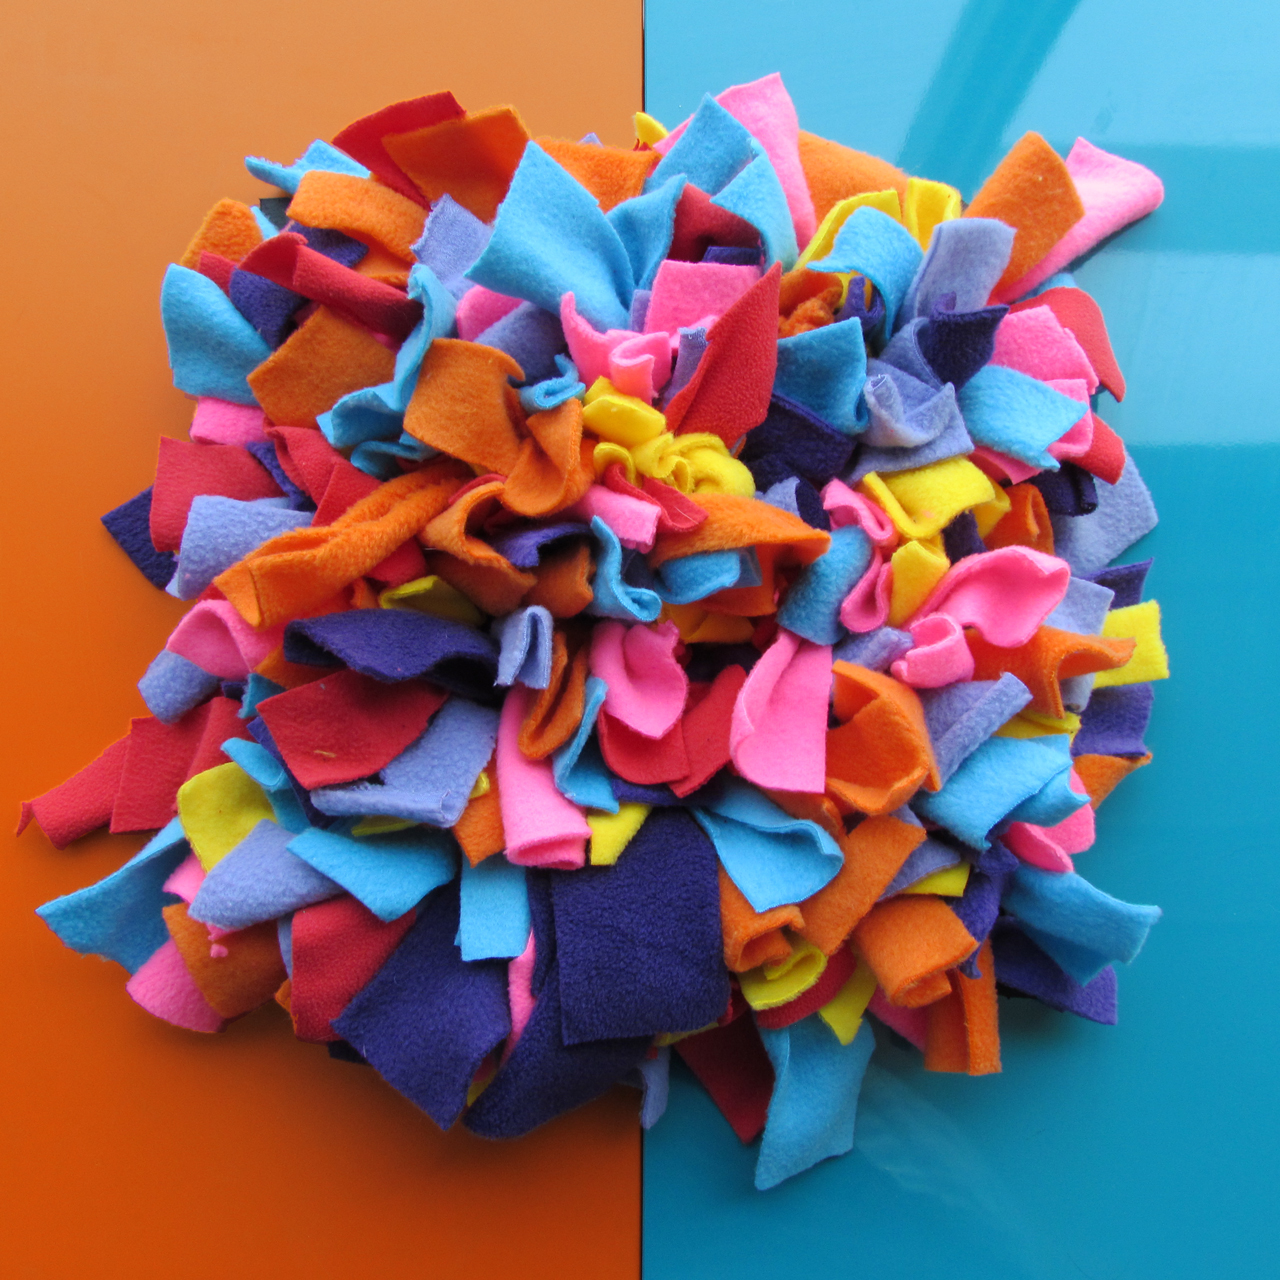 Fleece Snuffle Mats All About Dogs